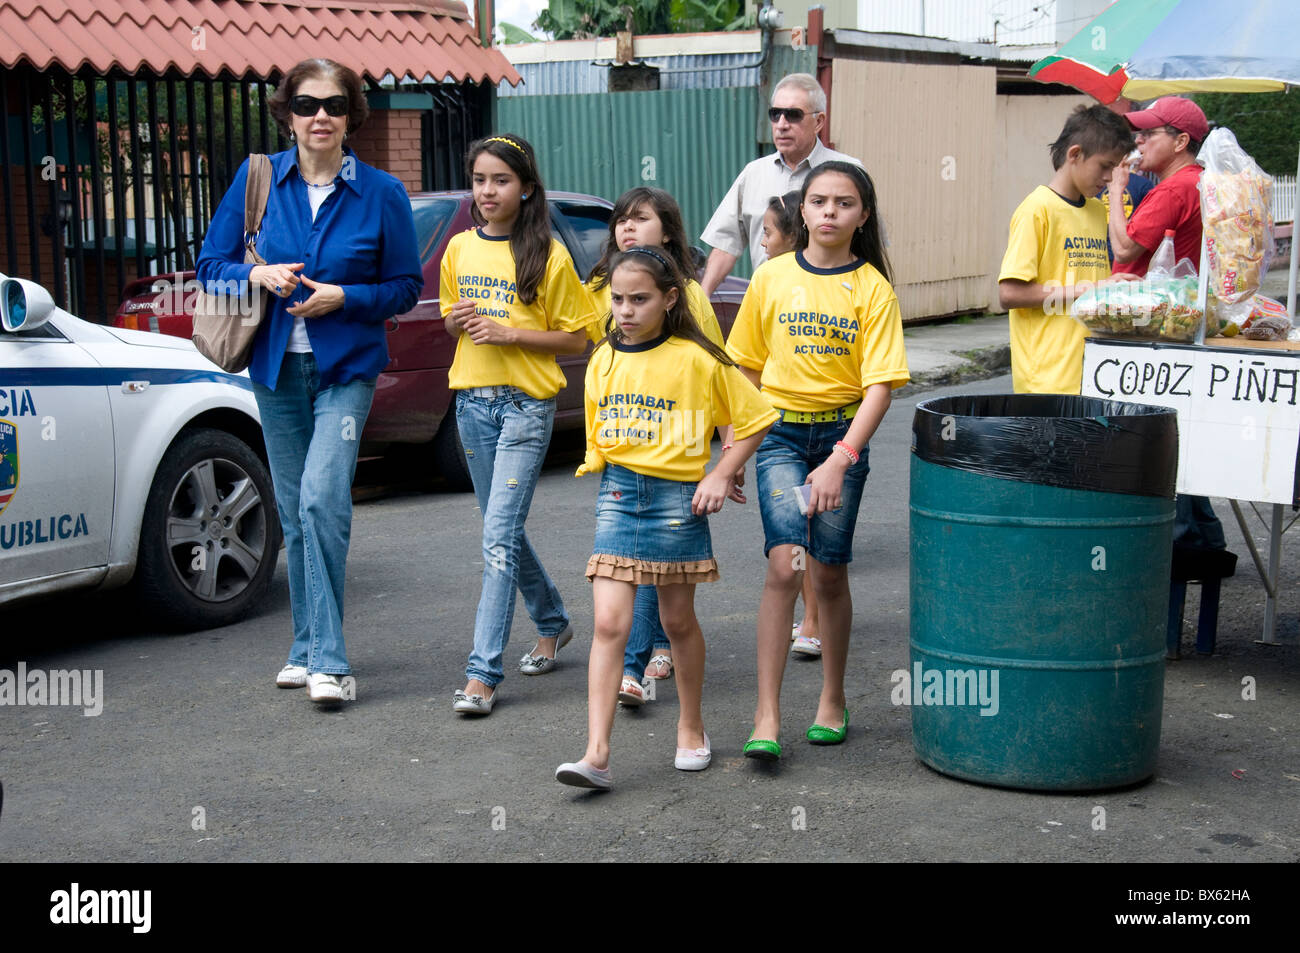 Children supporters of a Political party wearing political party t-shirt San José Costa Rica Municipal elections - Stock Image